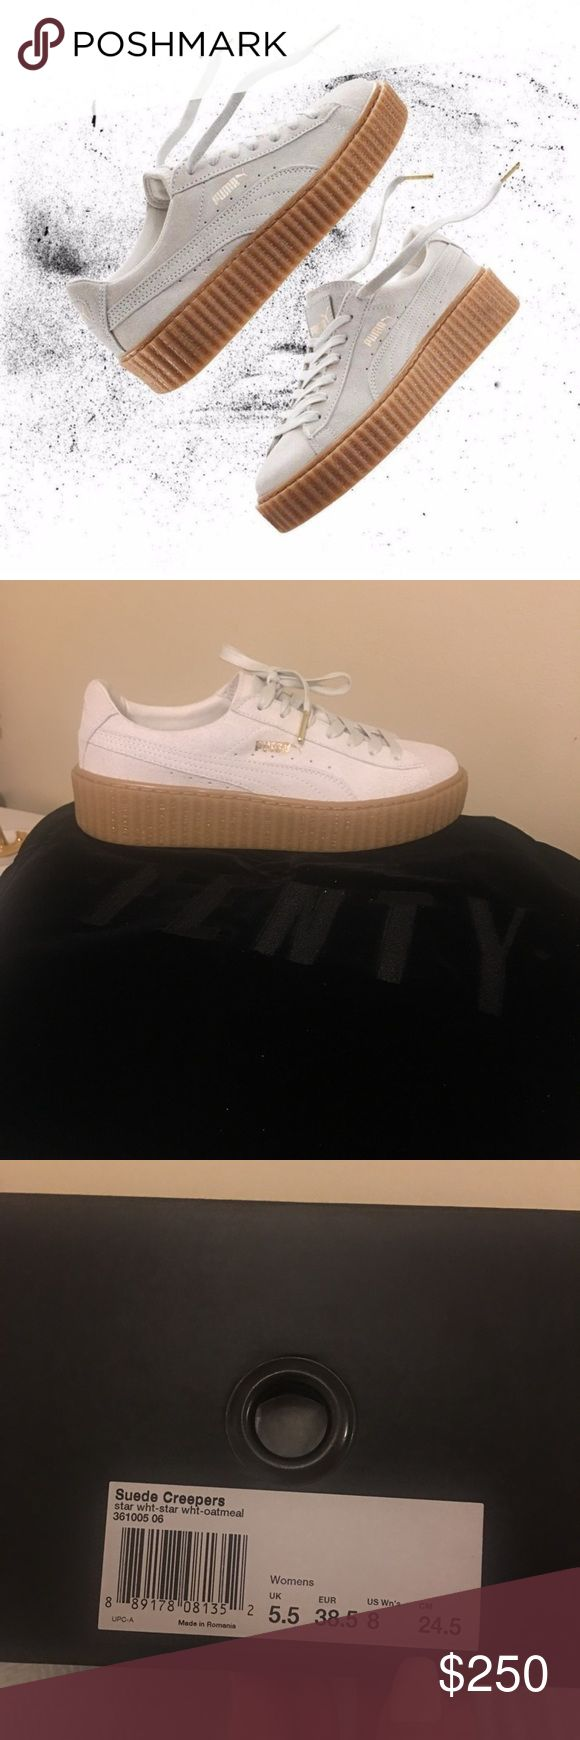 FENTY x Rihanna Puma Suede Creeper Star White Brand NEW! never been worn FENTY x Rihanna Puma Suede Creeper Star White with Gum bottom Womens Size 8 Fits true to size! These shoes are my absolute favorite! It's half a size too big on me😢 they're sold out everywhere, believe me I check every day 😩 Puma Shoes